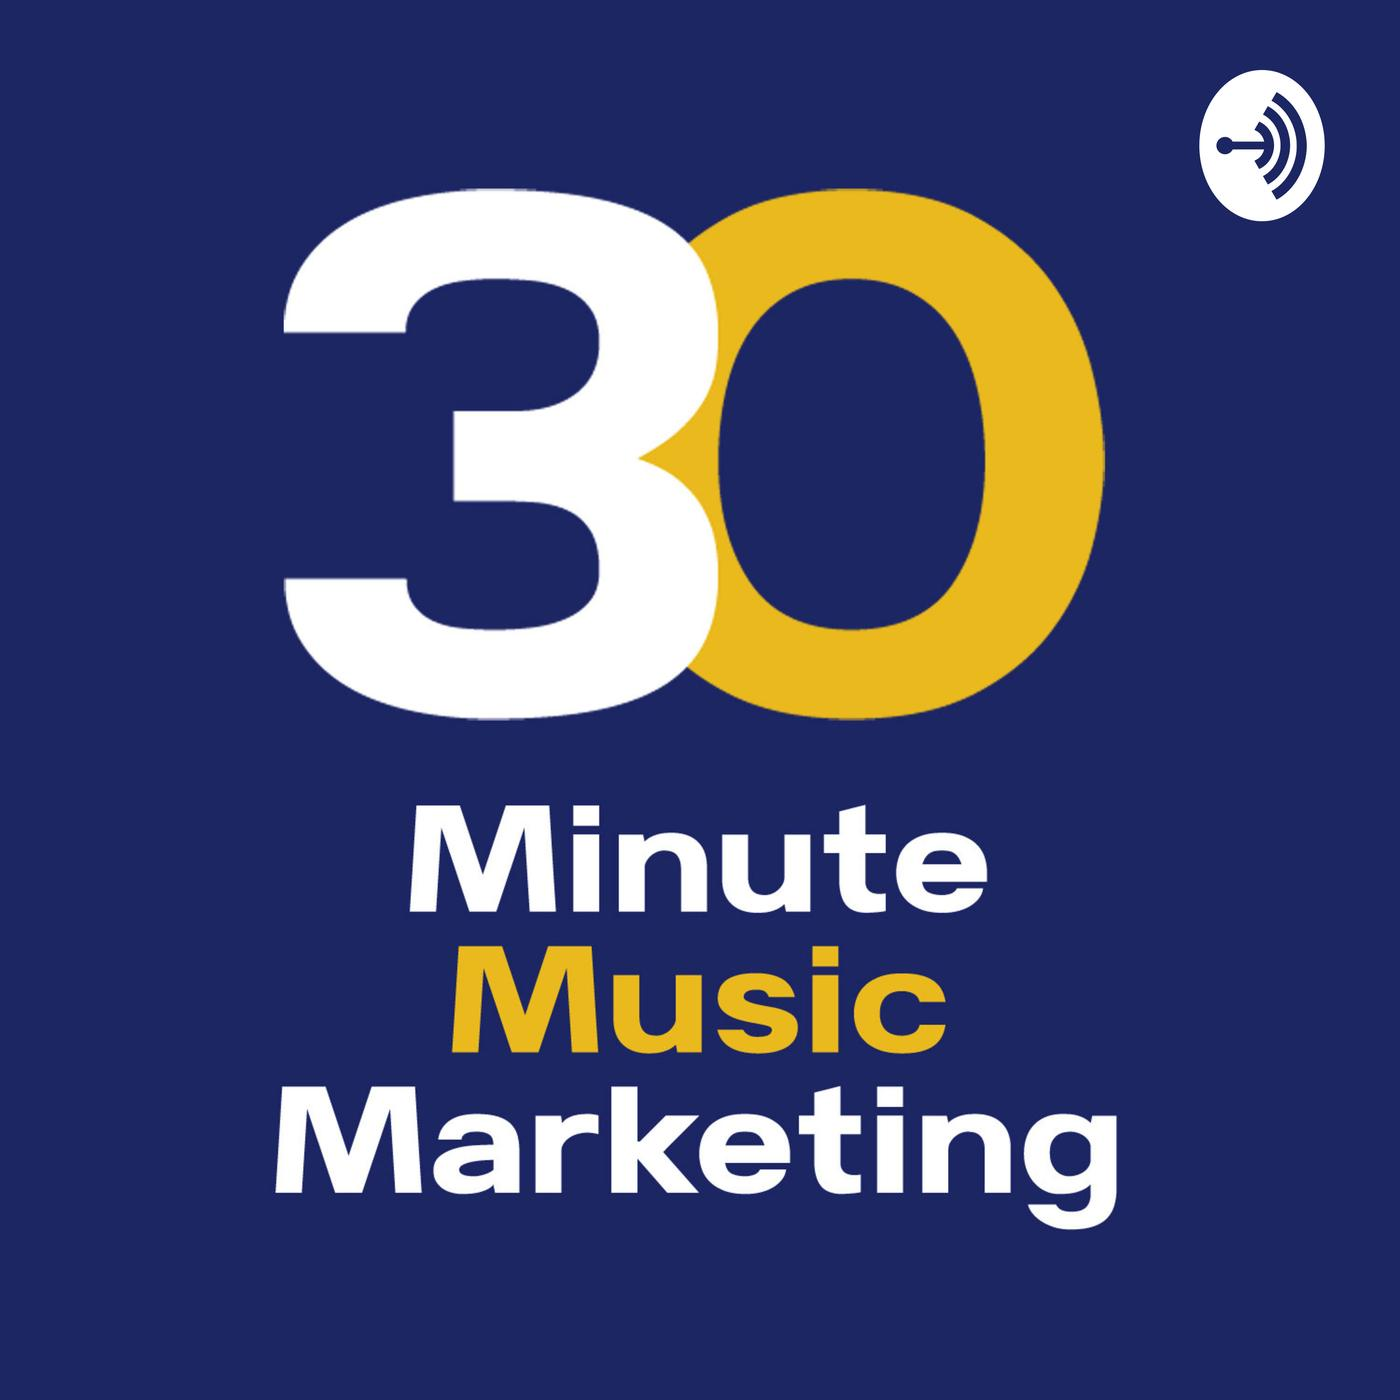 30 Minute Music Marketing (podcast) - Sheldon Southworth